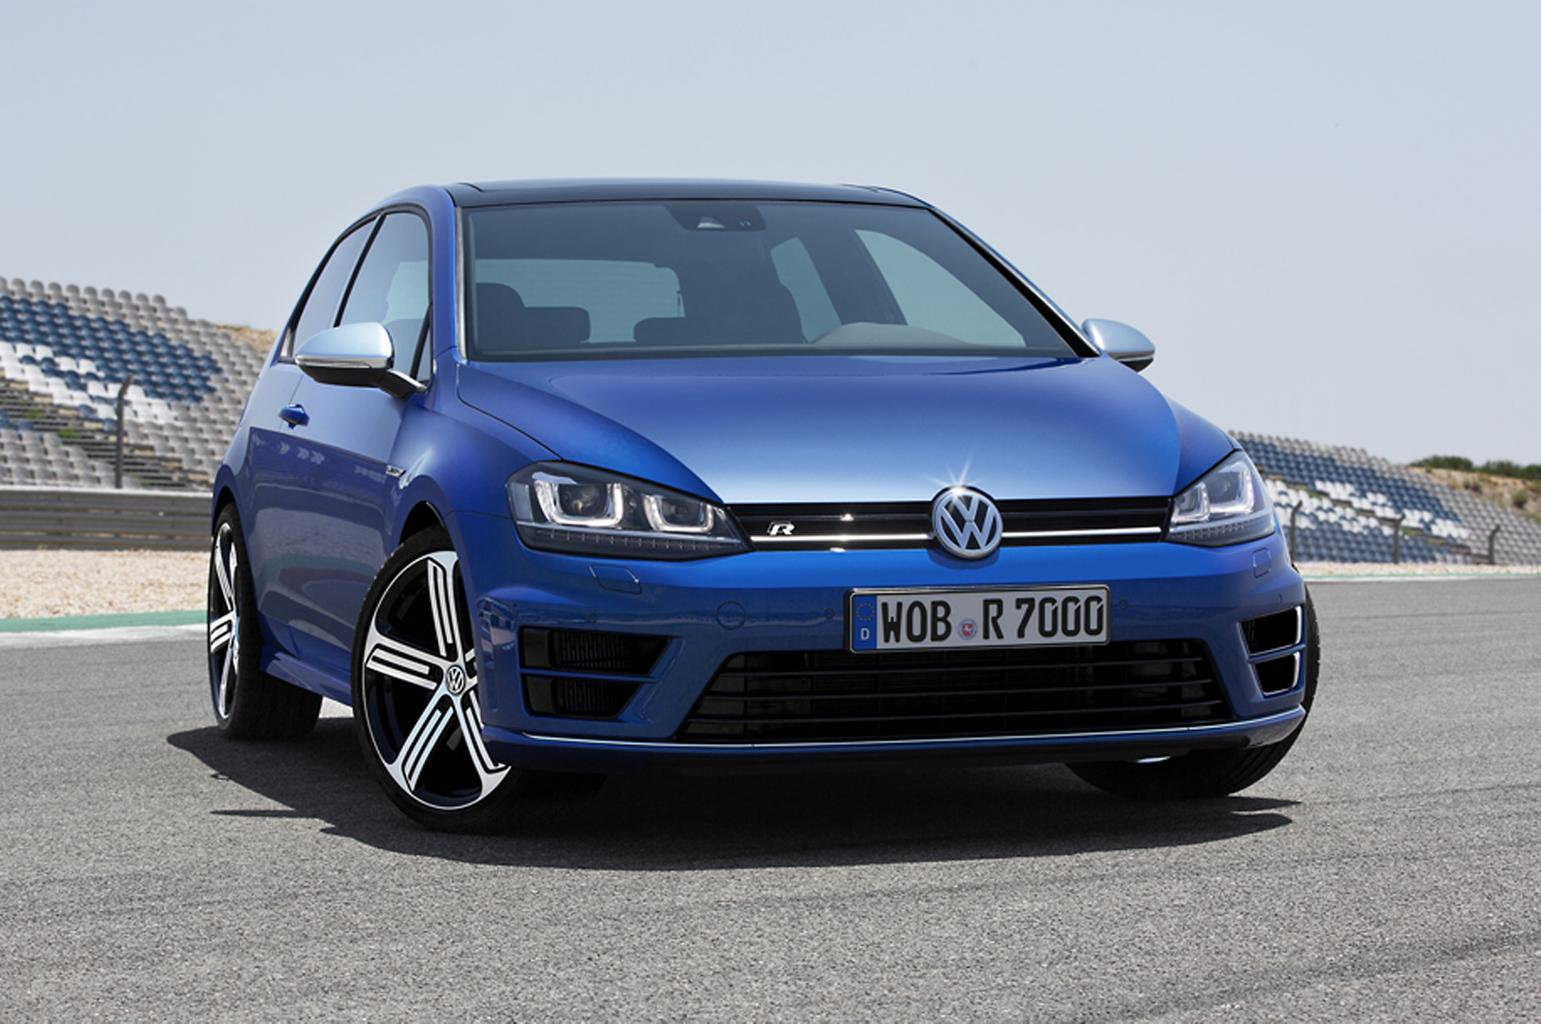 2014 Volkswagen Golf R revealed